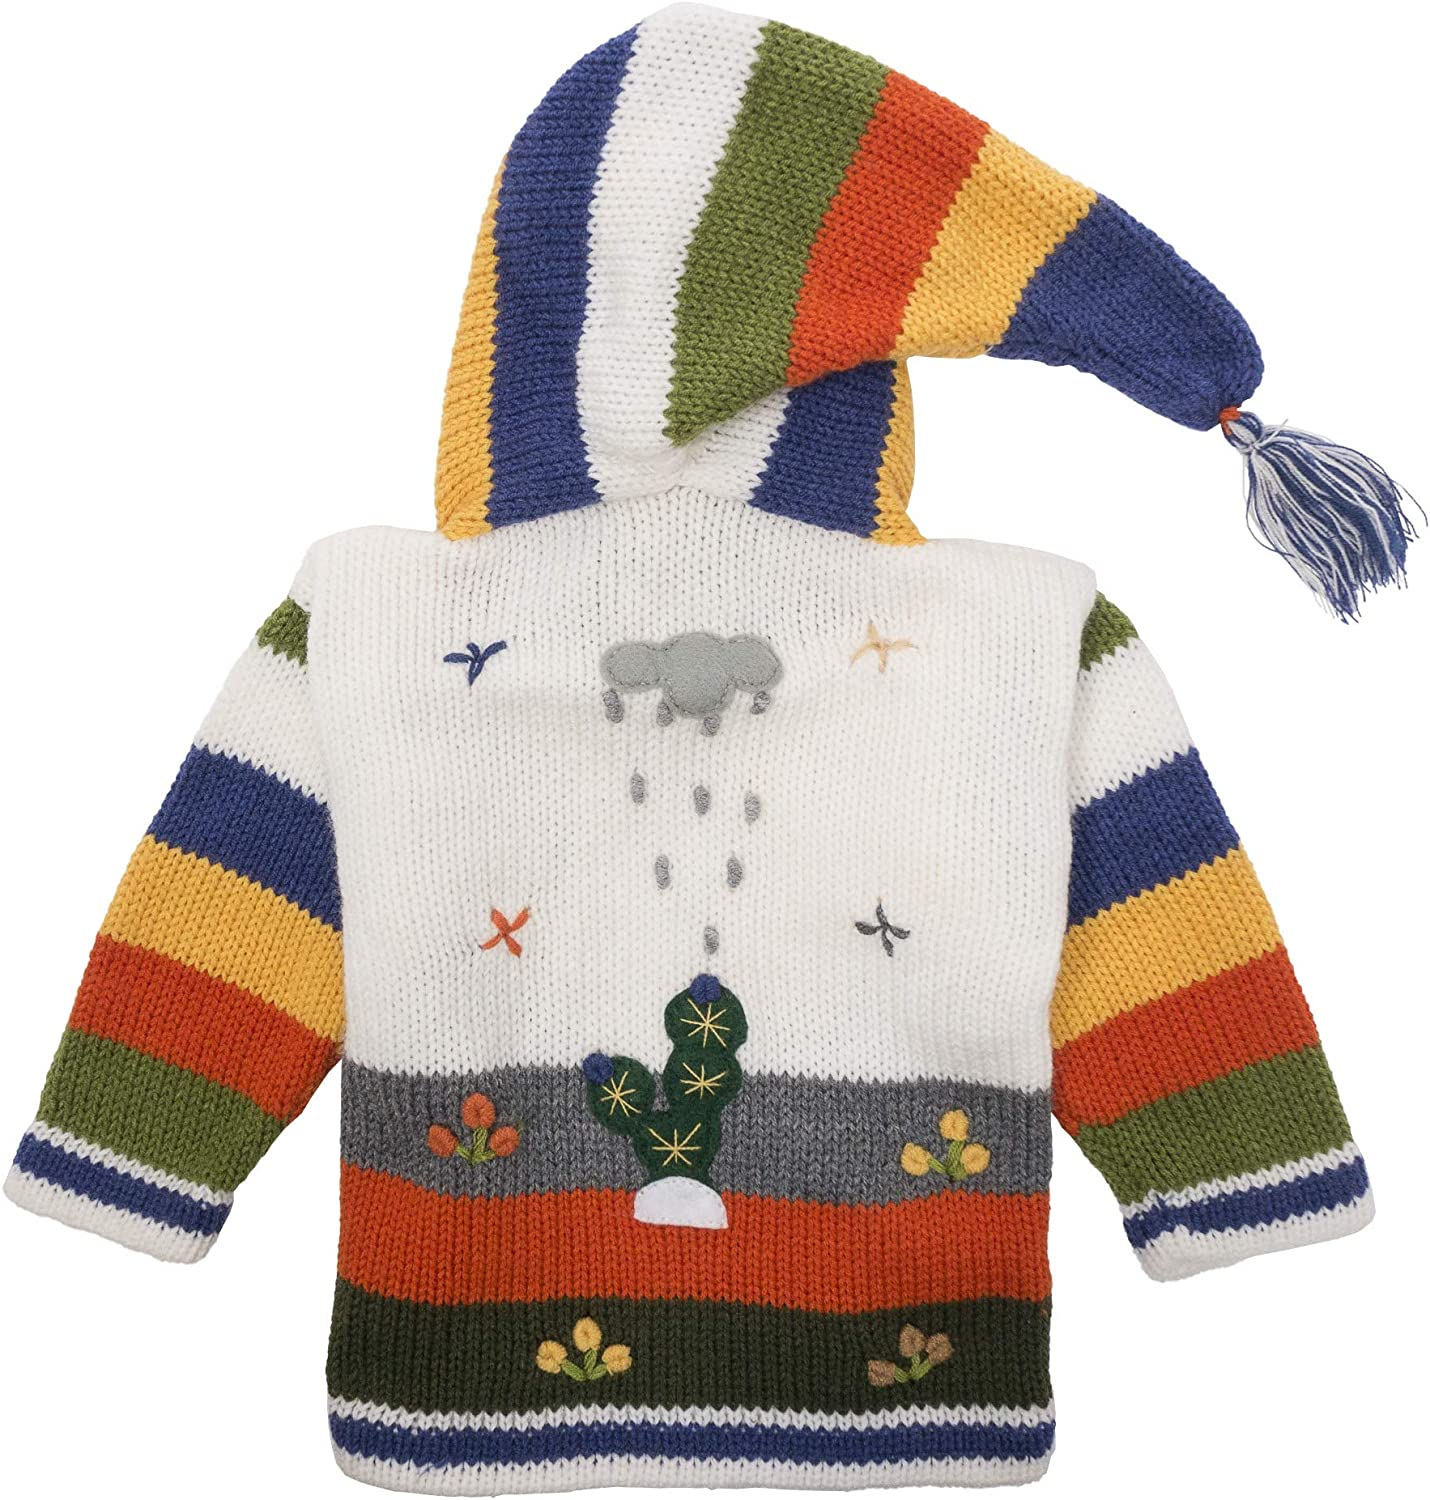 Warm 6 Year Inkita Hand Knitted Childrens White Peruvian Cardigan Made from Andean /& Sheeps Wool Made in Peru. Beautiful Pixie Hood